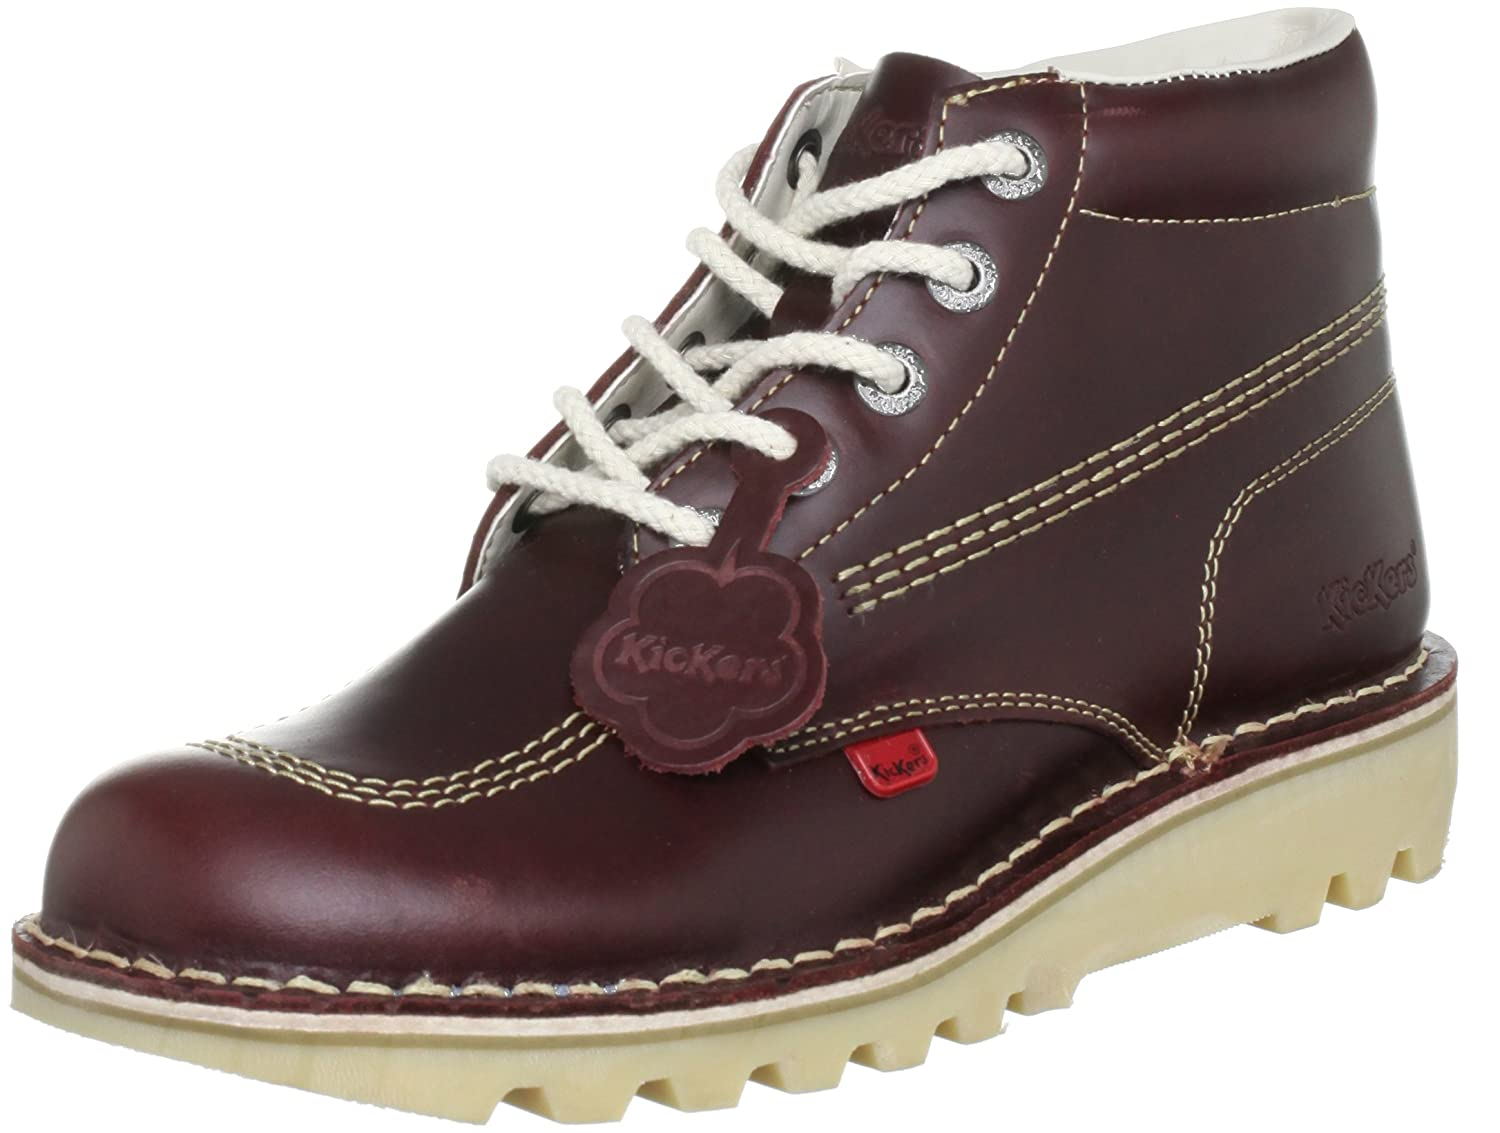 084367a72241 low-cost Mens Kickers Boots Kick Hi Leather Dark Red Boots - 10.5 UK ...